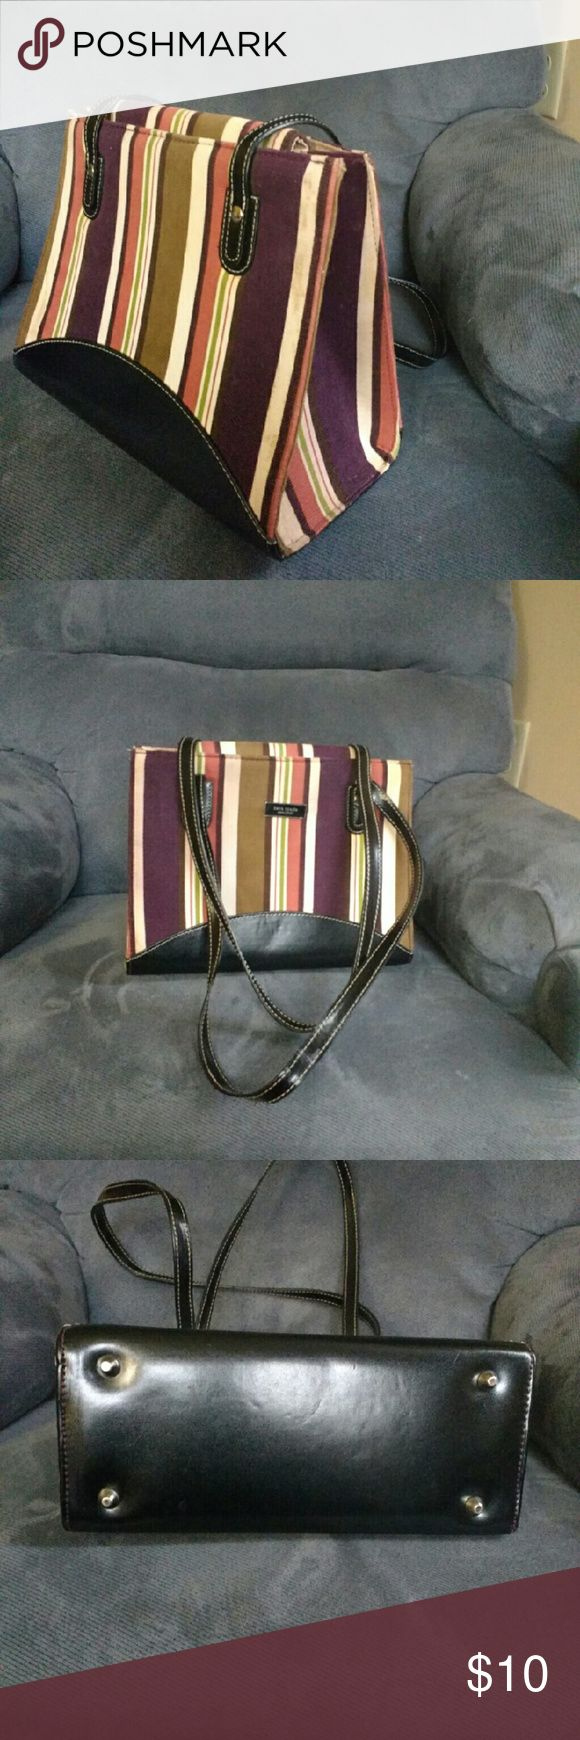 Cute Striped Shoulder Bag Cute brushed corduroy shoulder bag with mint faux leather bottom and straps.   mint condition very nice mix of colors.  From a smoke and pet free location. Bags Shoulder Bags